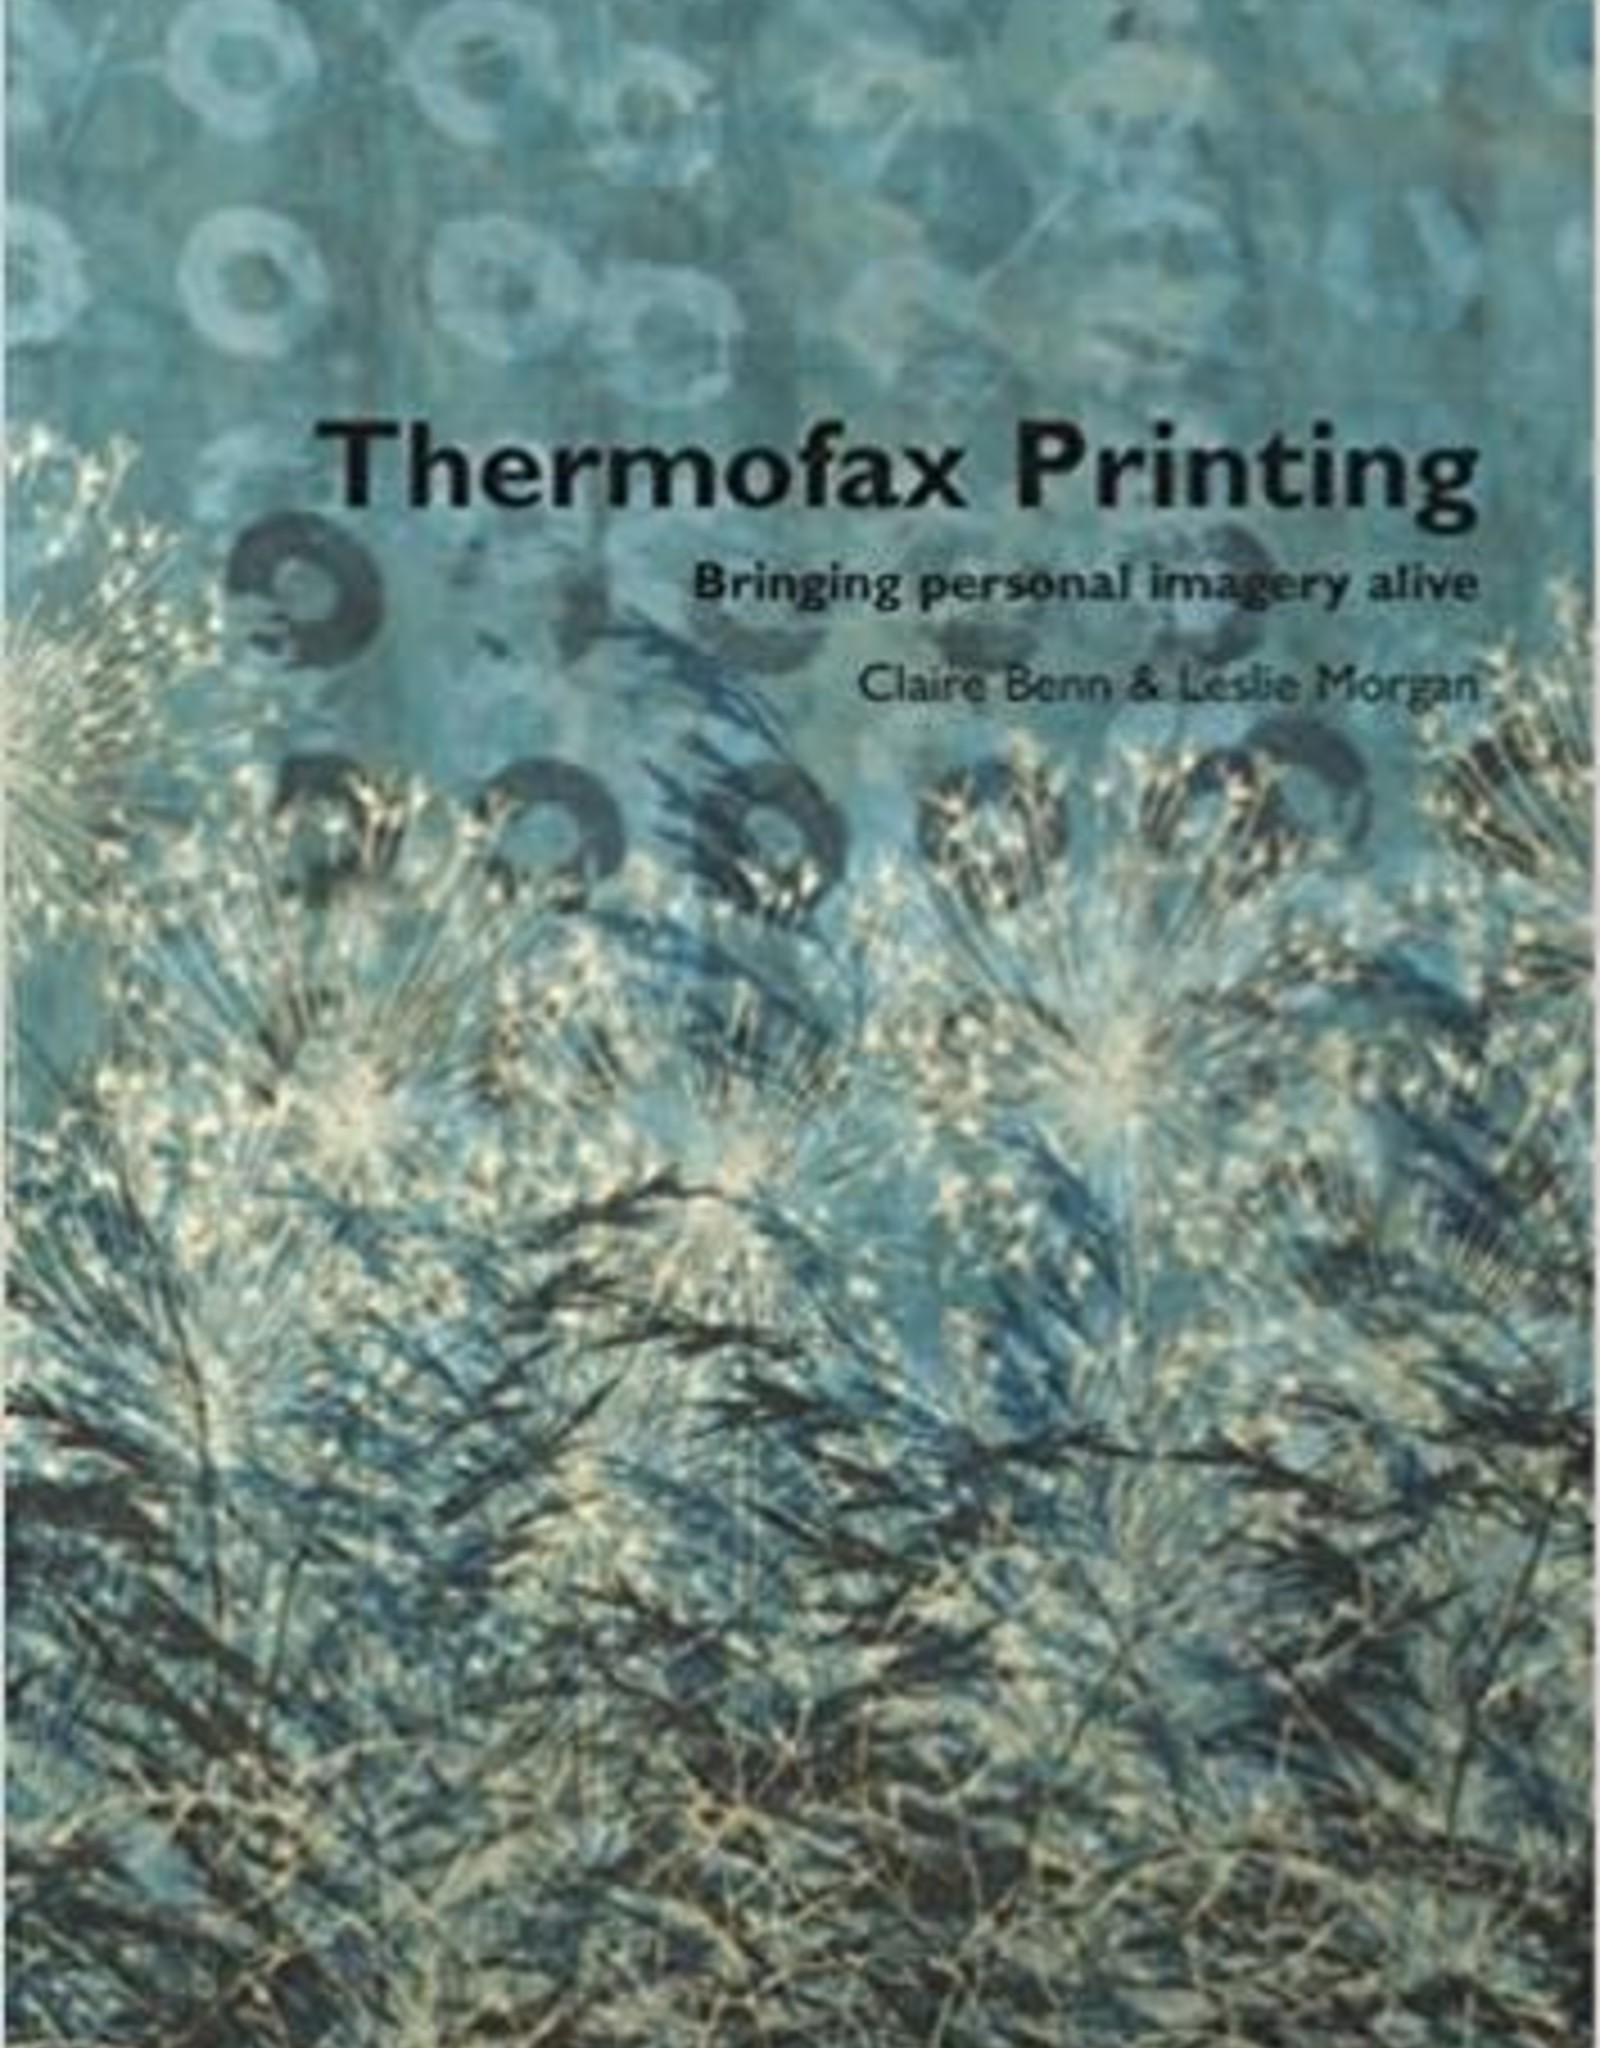 Thermofax Printing / Clare Benn and Leslie Morgan